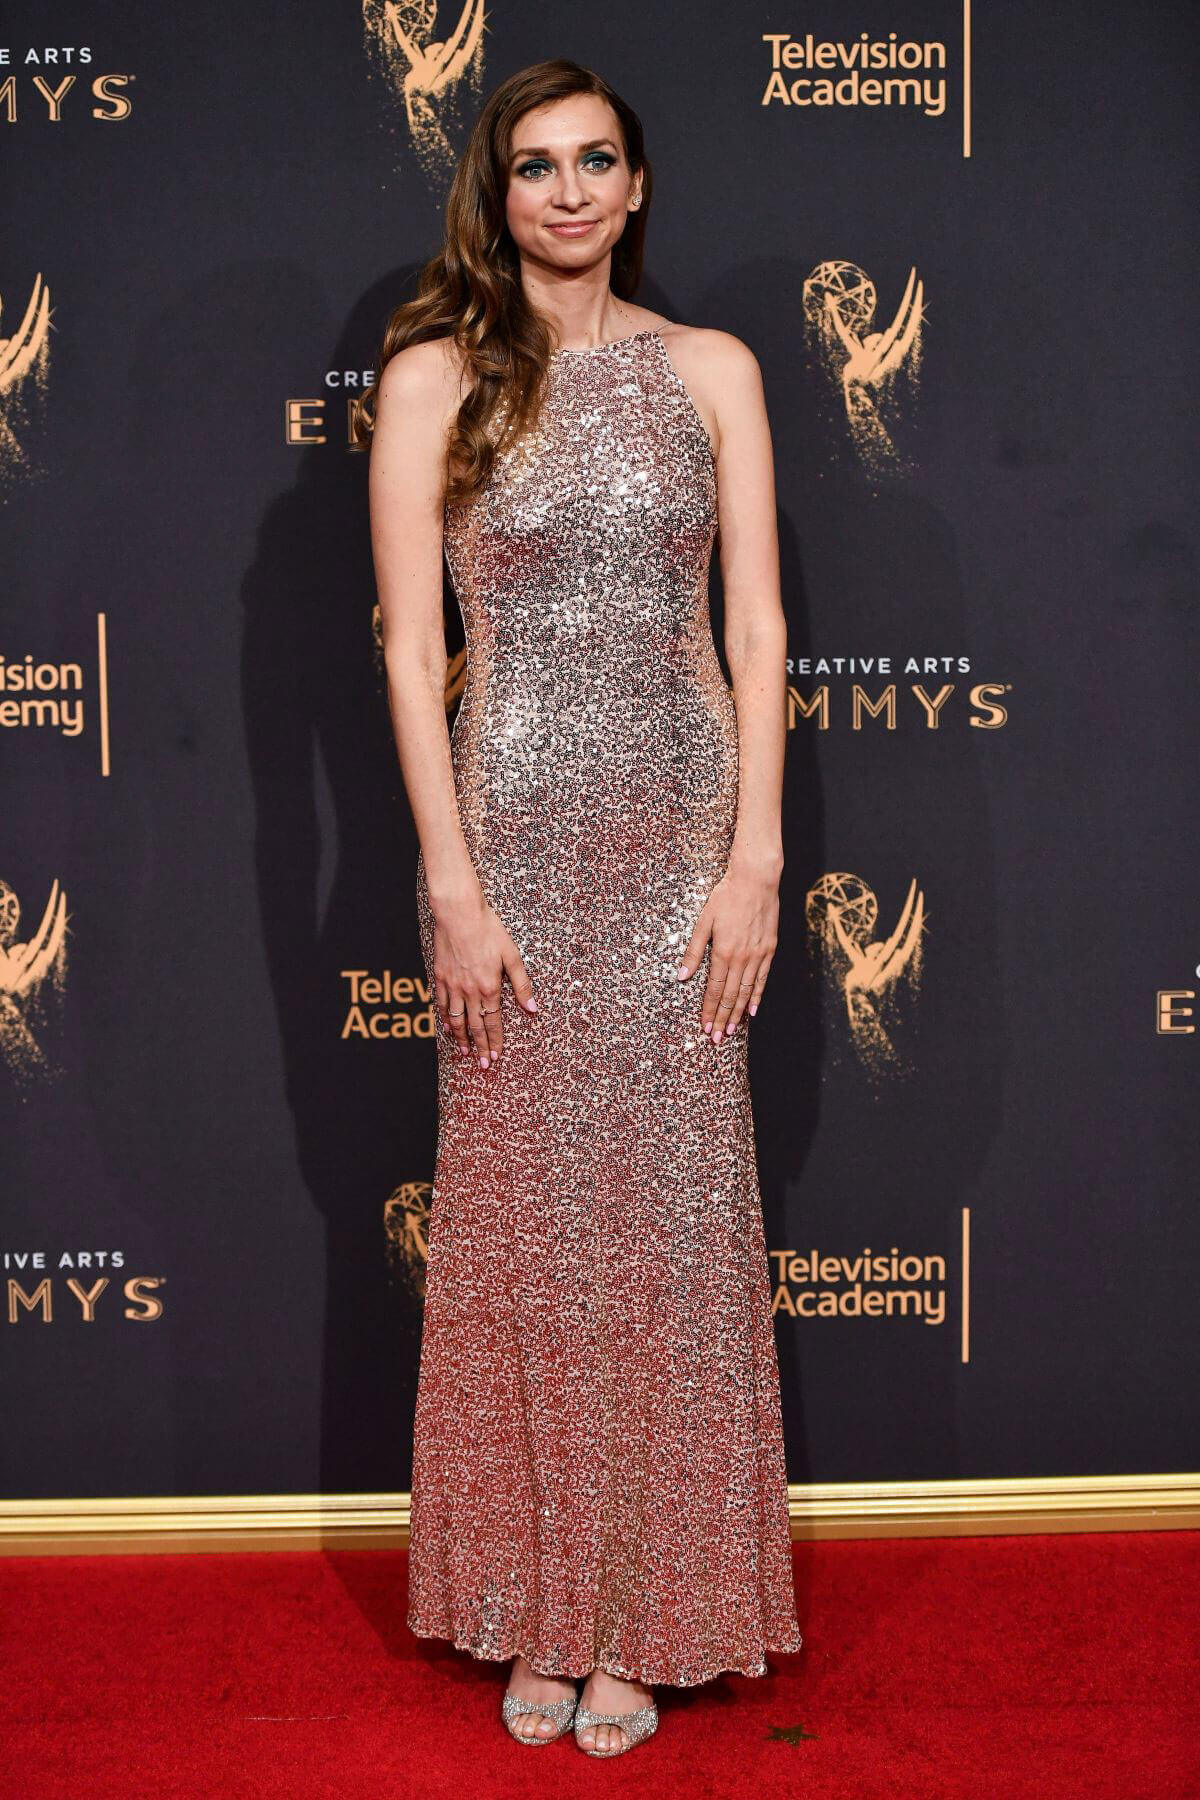 Lauren Lapkus at Creative Arts Emmy Awards in Los Angeles